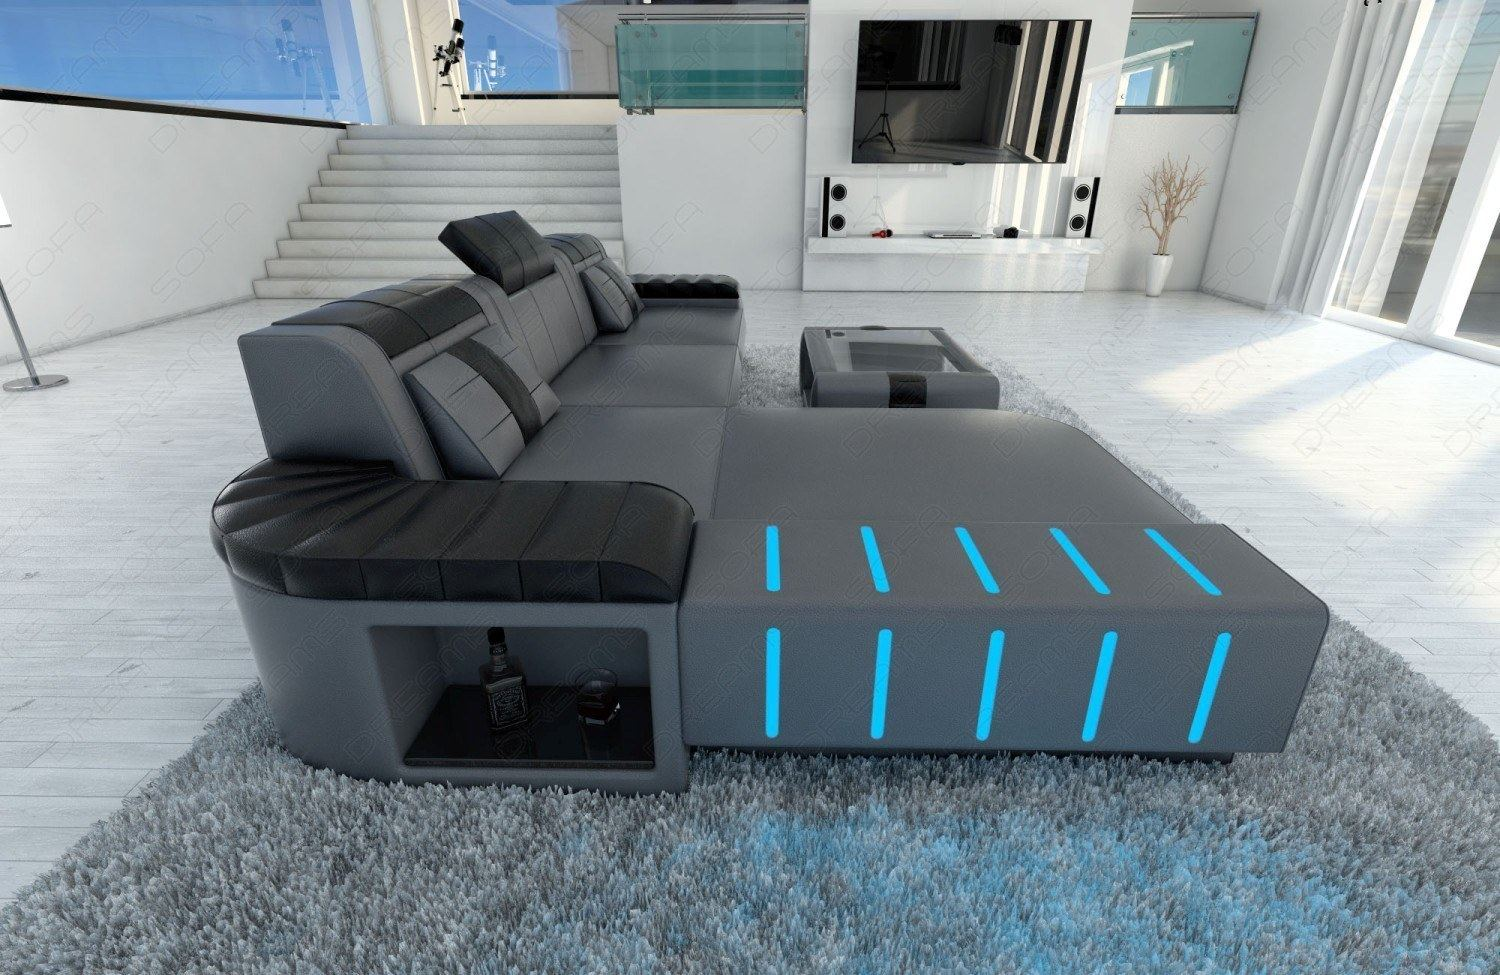 designercouch bellagio l f rmig ecksofa mit led beleuchtung grau schwarz ebay. Black Bedroom Furniture Sets. Home Design Ideas